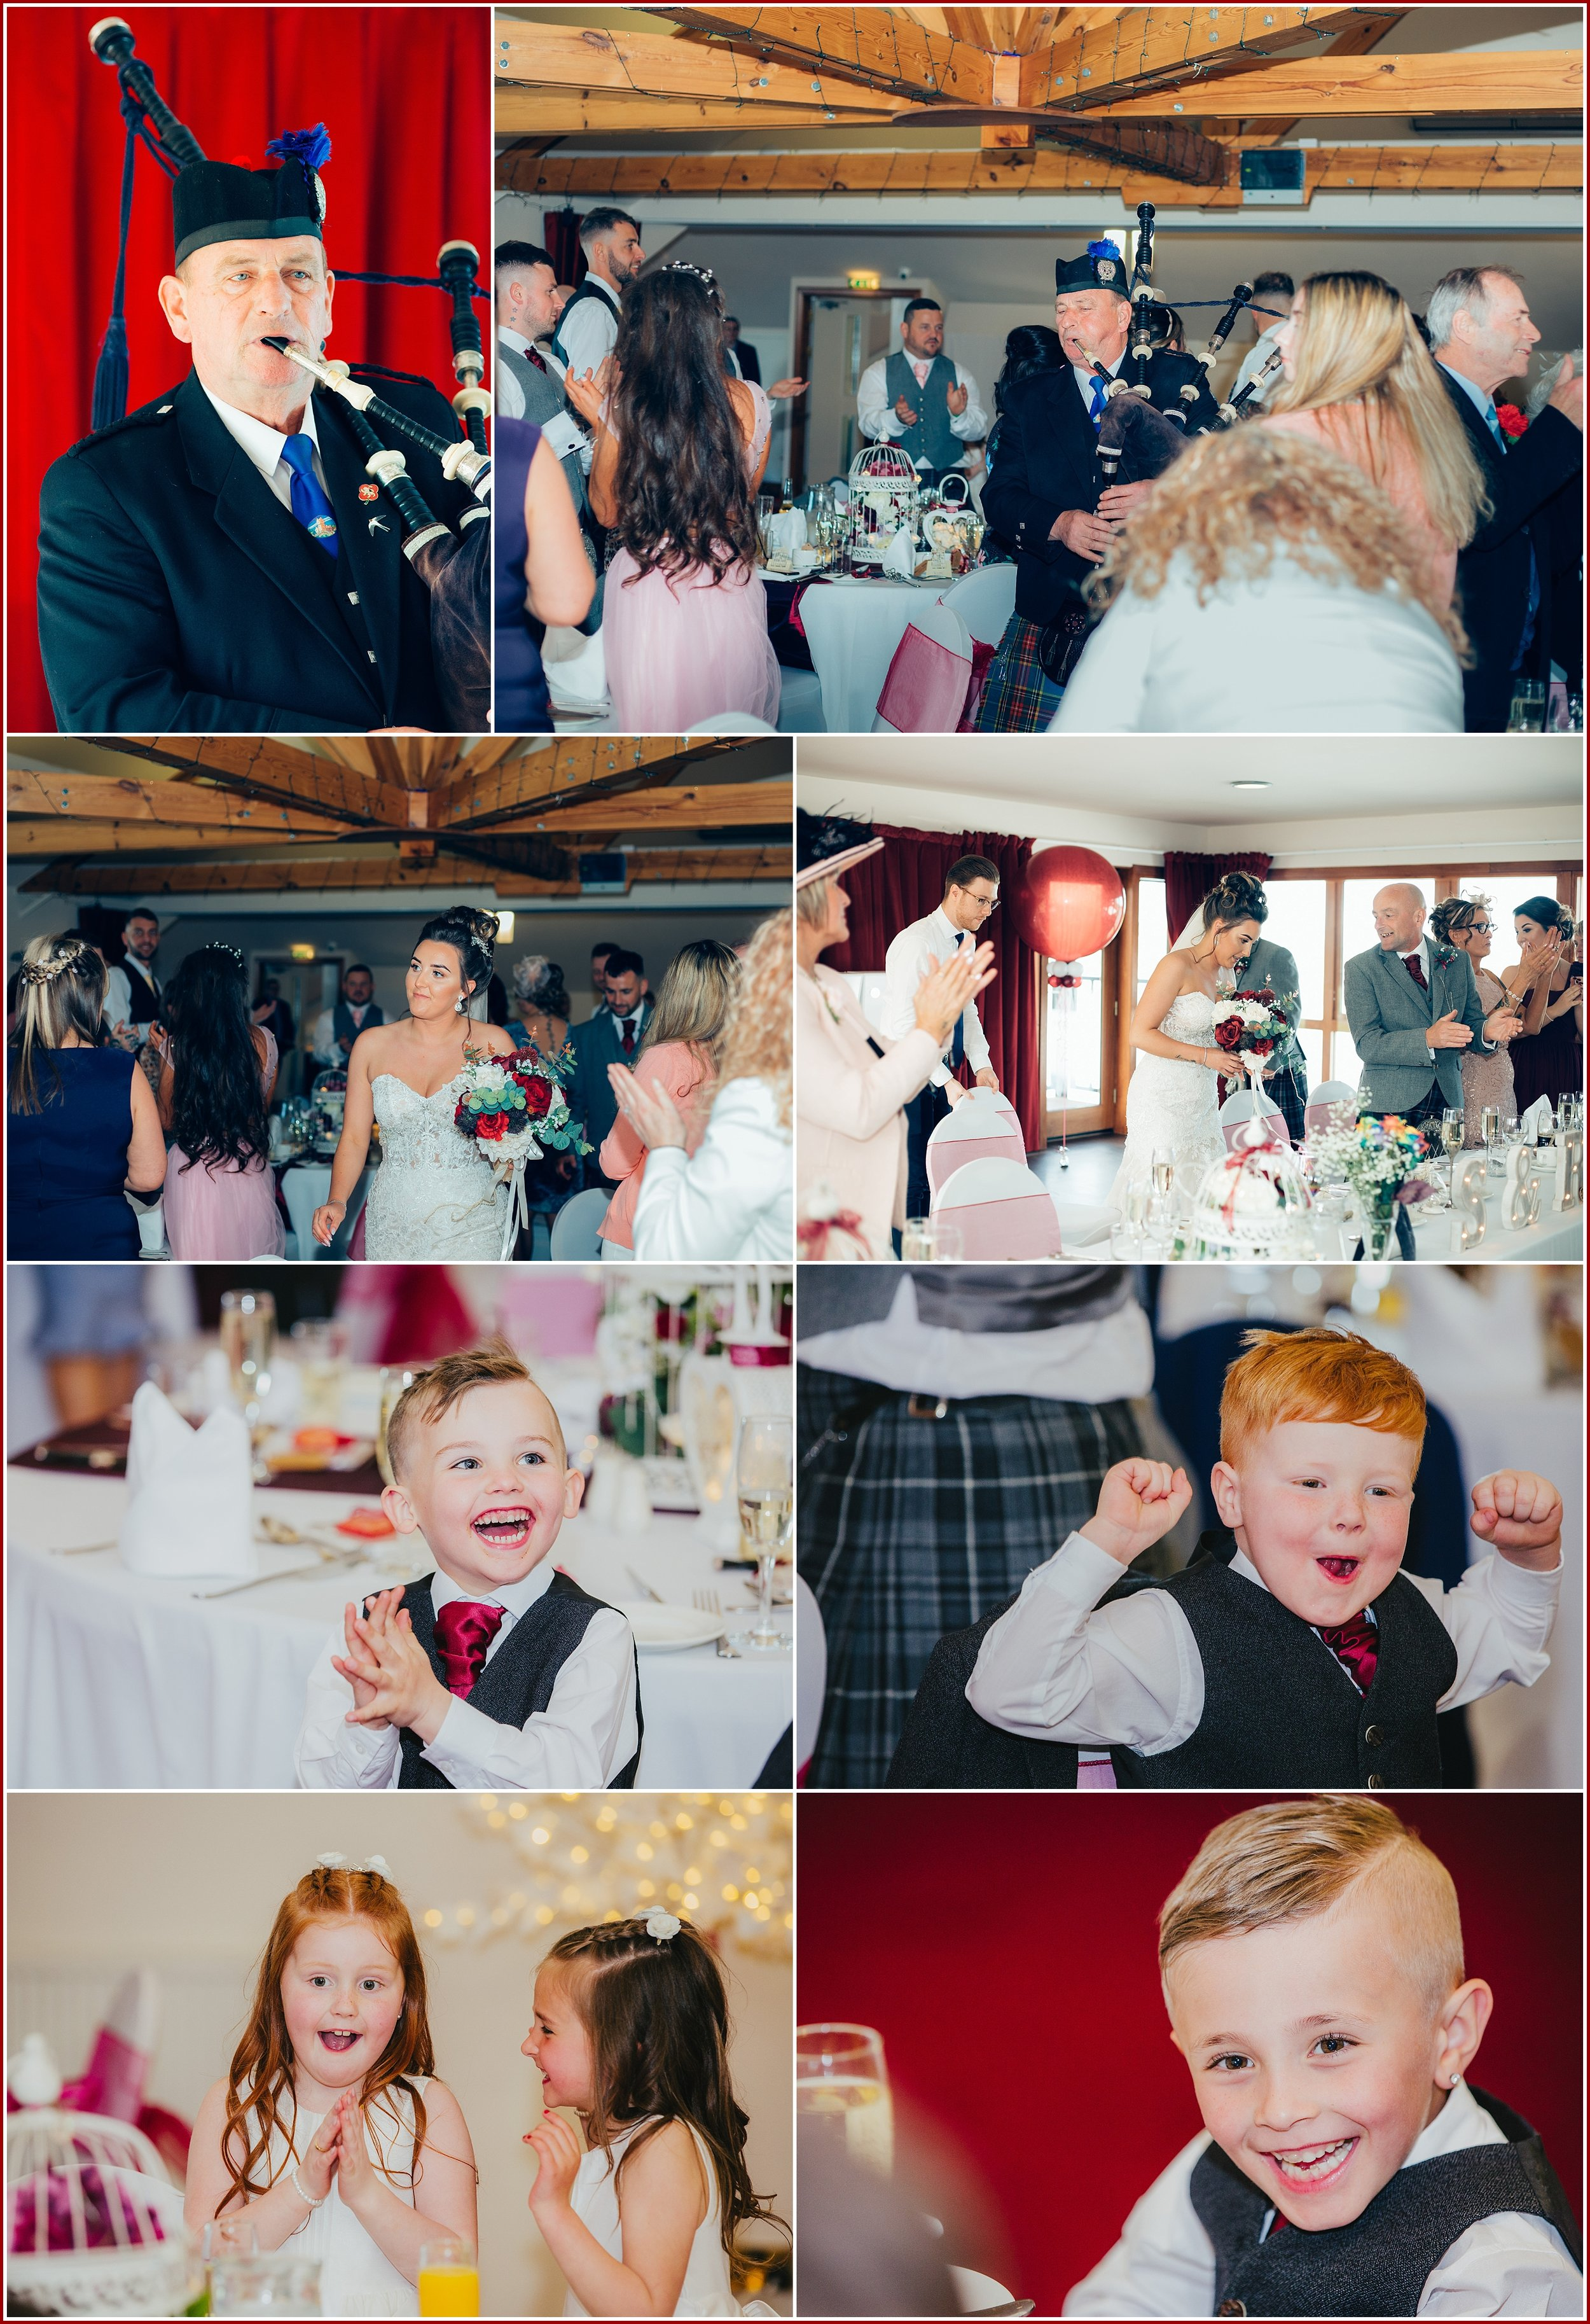 Kirsty_Brown_Wedding_Photography_0104.jpg